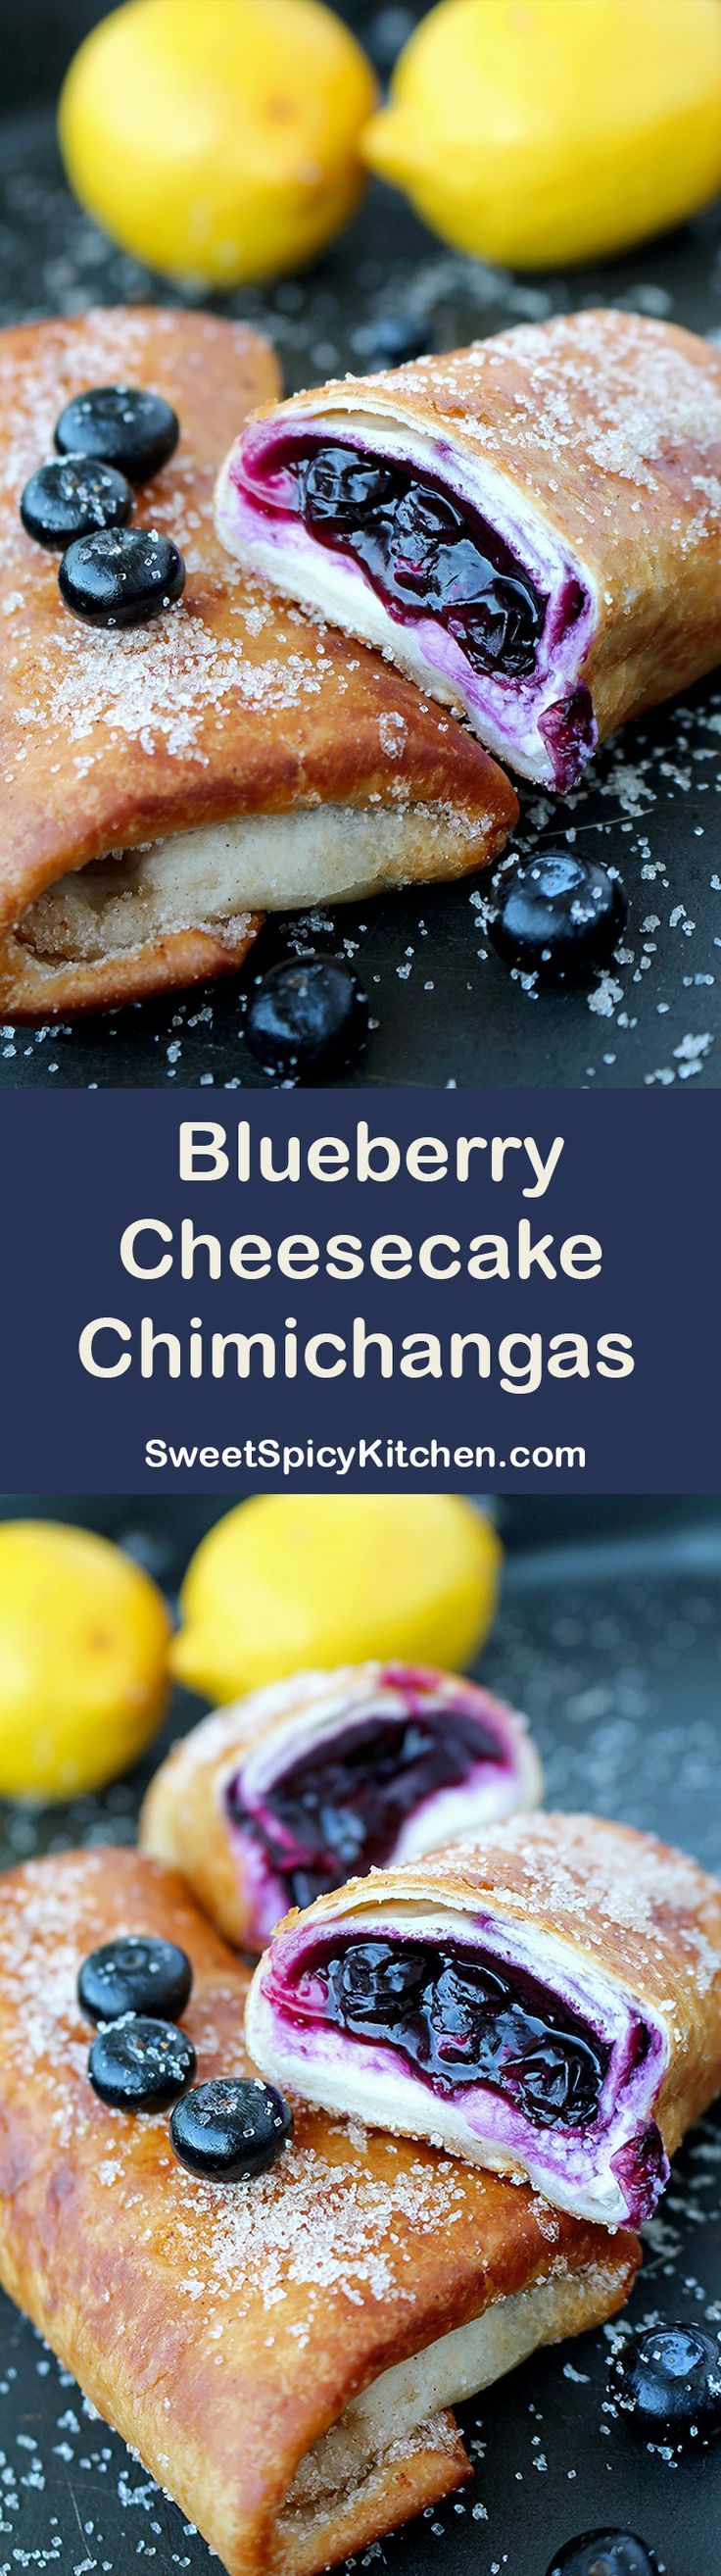 Chimichangas with cream cheese and blueberry sauce – a recipe for perfectly tasty Blueberry Cheesecake Chimichangas